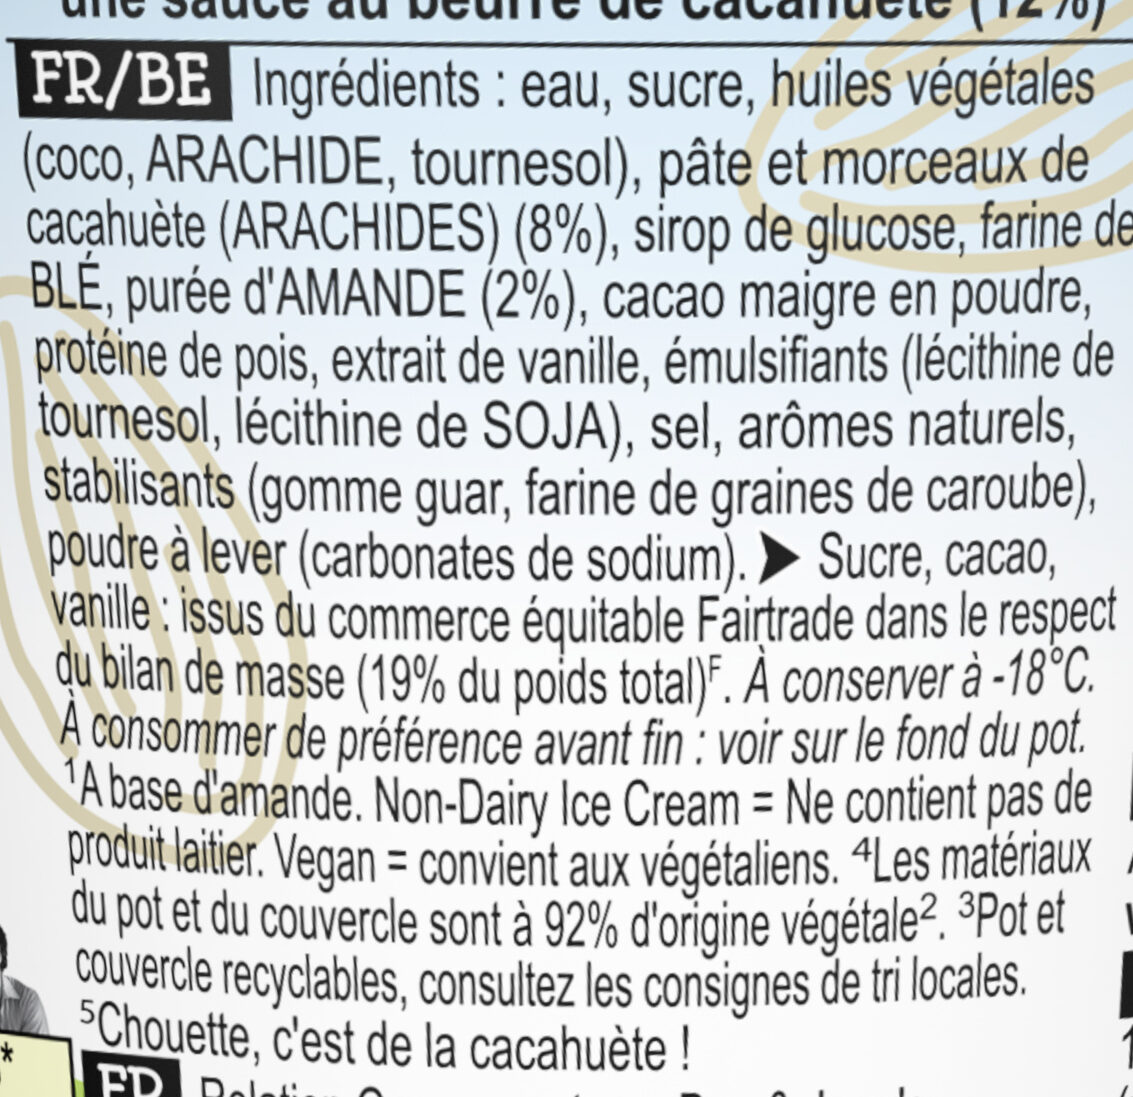 Ben & Jerry's Glace en Pot Peanut Butter Cookies 465ml - Ingredients - fr